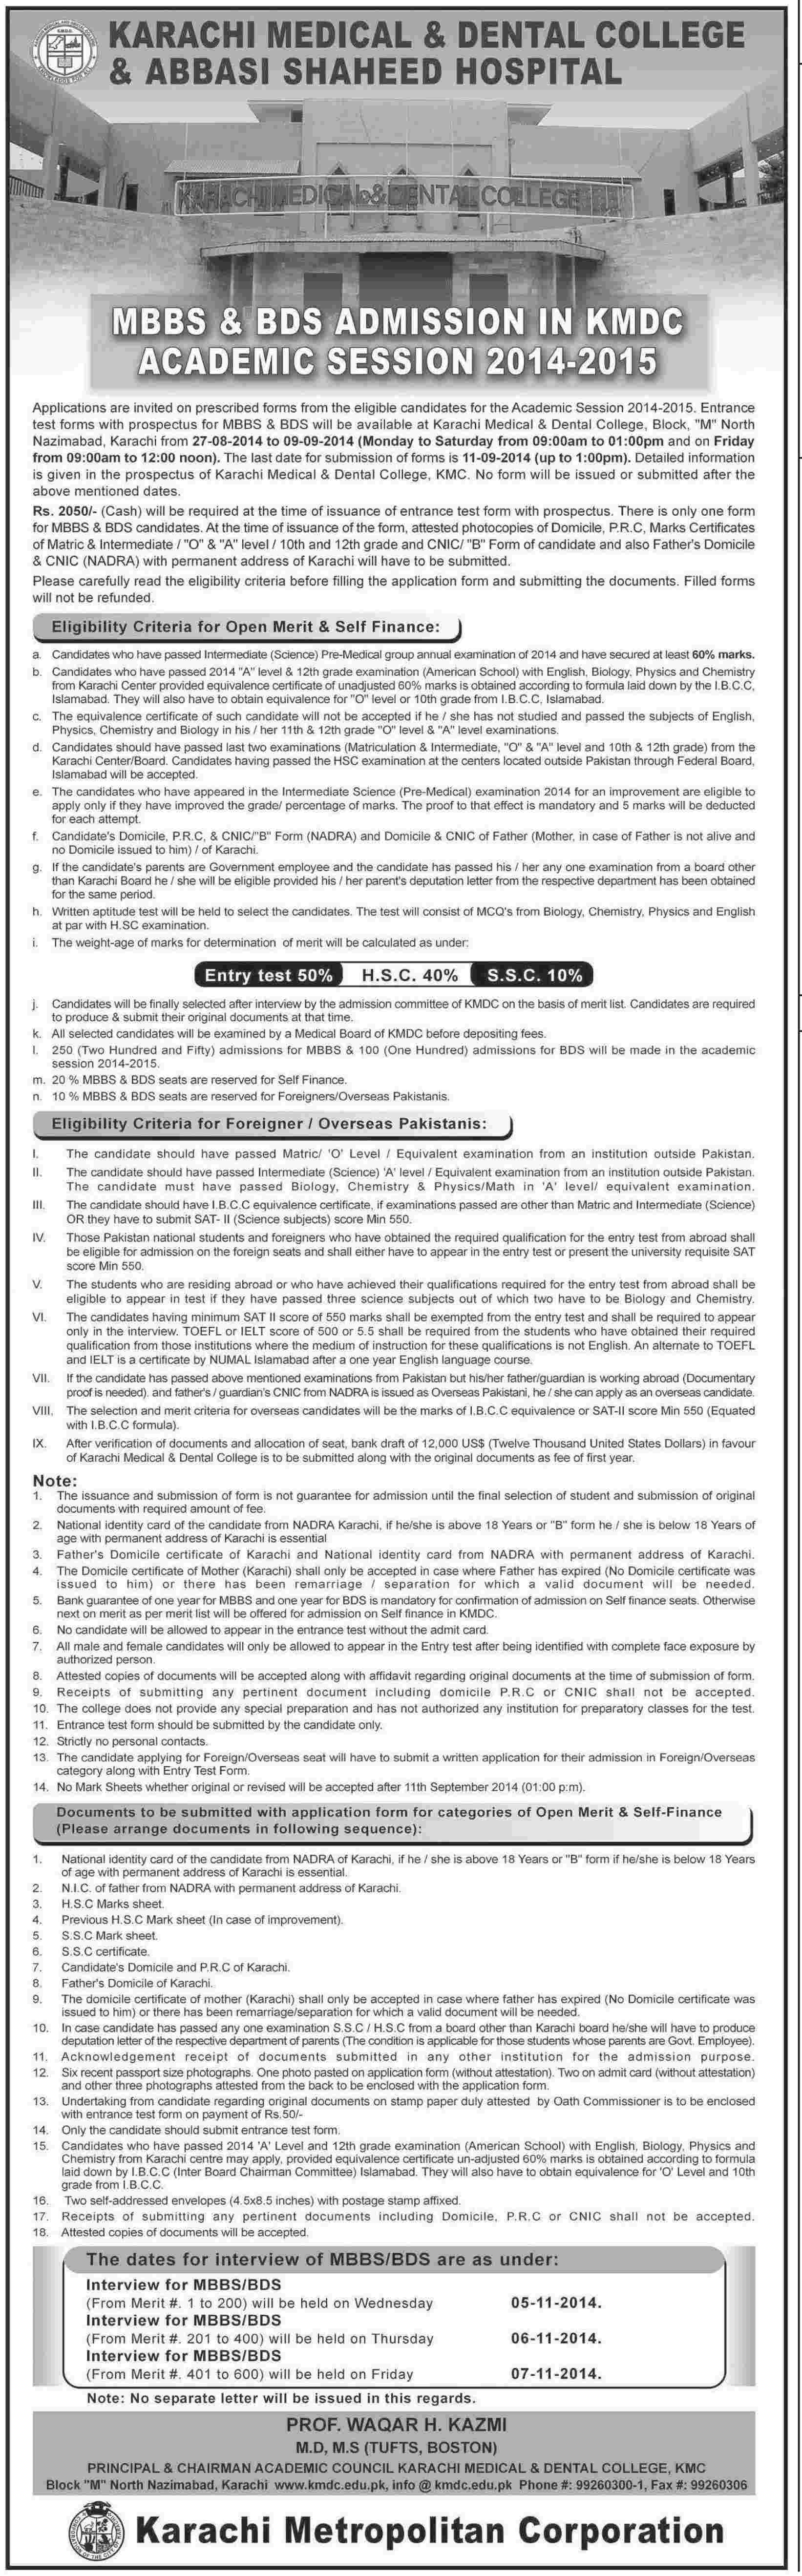 Karachi Medical & Dental College (KMDC) Karachi Admission Notice 2014 for Bachelor of Medicine, Bachelor of Surgery (MBBS), Bachelor of Dental Surgery (BDS)